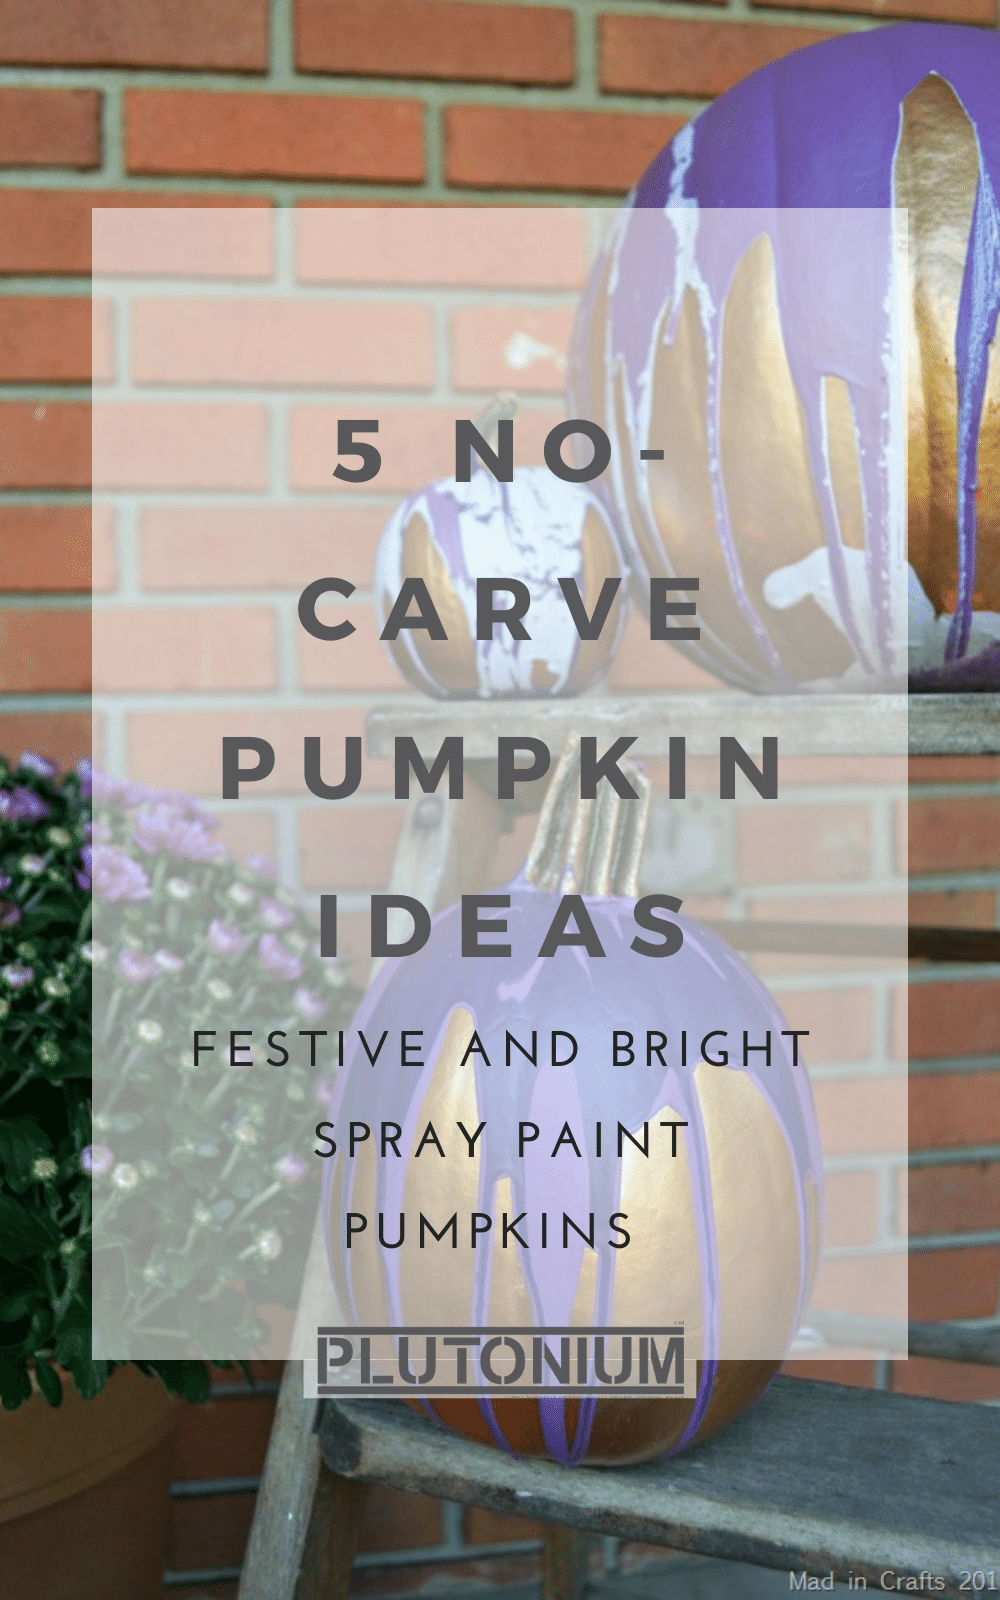 5 No-Carve Pumpkin Ideas: Not interested in carving or ready to decorate too early for a carved pumpkin? Try these spray paint pumpkins, from traditional to whimsical, we have 5 great pumpkin spray paint projects perfect for Halloween and more! #Plutoniumpaint #spraypaintdiy #spraypaintprojects #nocarvepumpkin #spraypaintpumkin